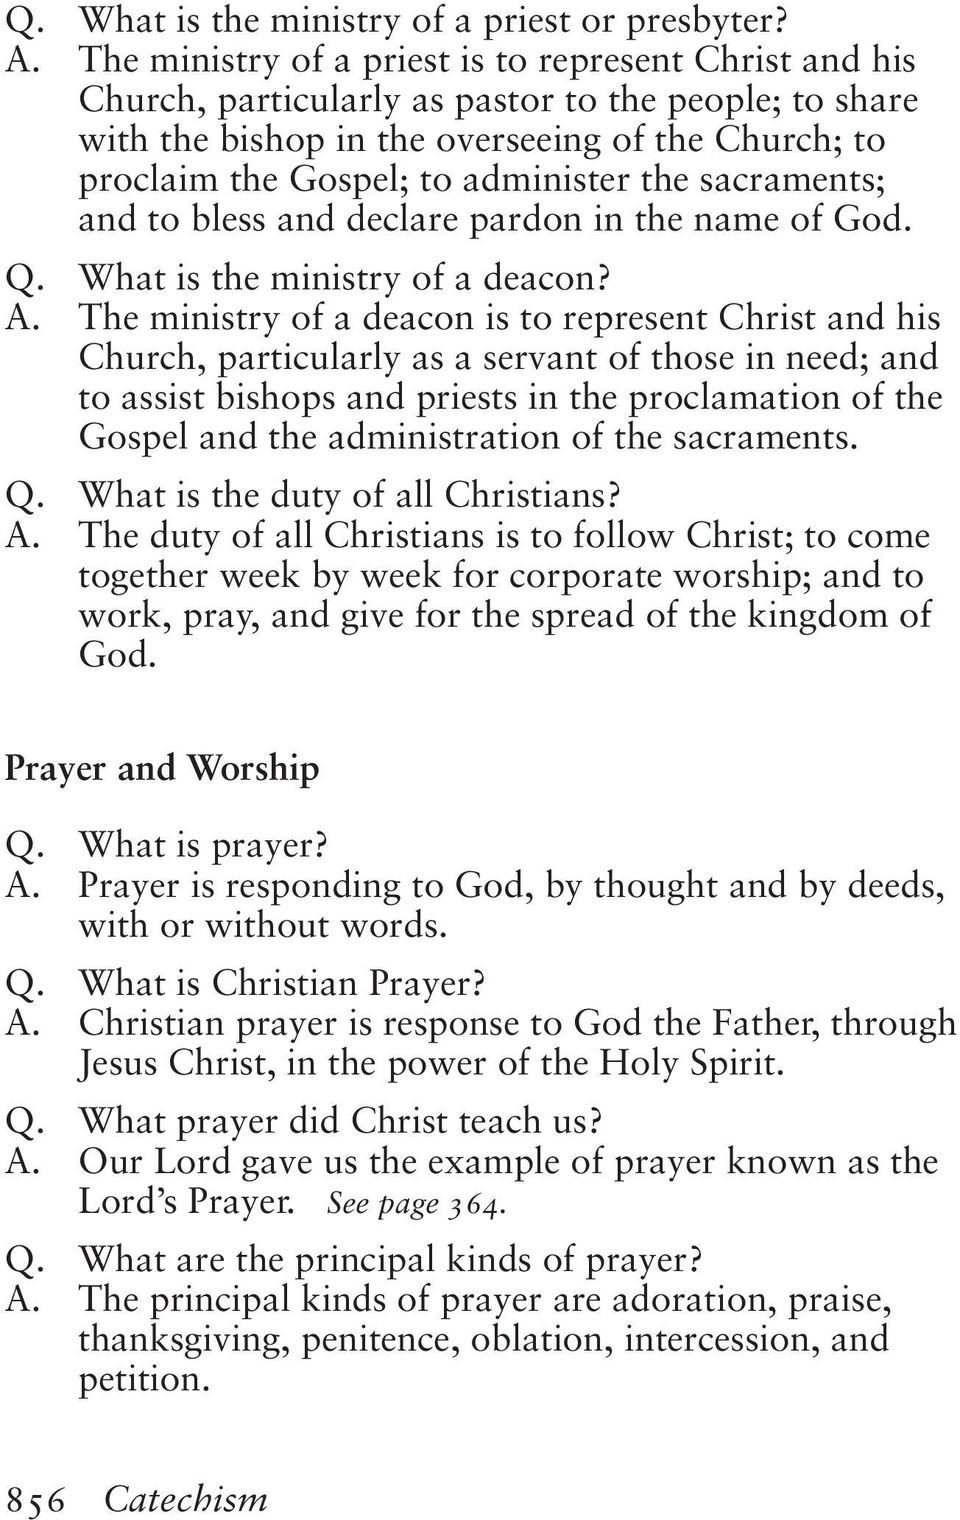 the sacraments; and to bless and declare pardon in the name of God. Q. What is the ministry of a deacon? A.